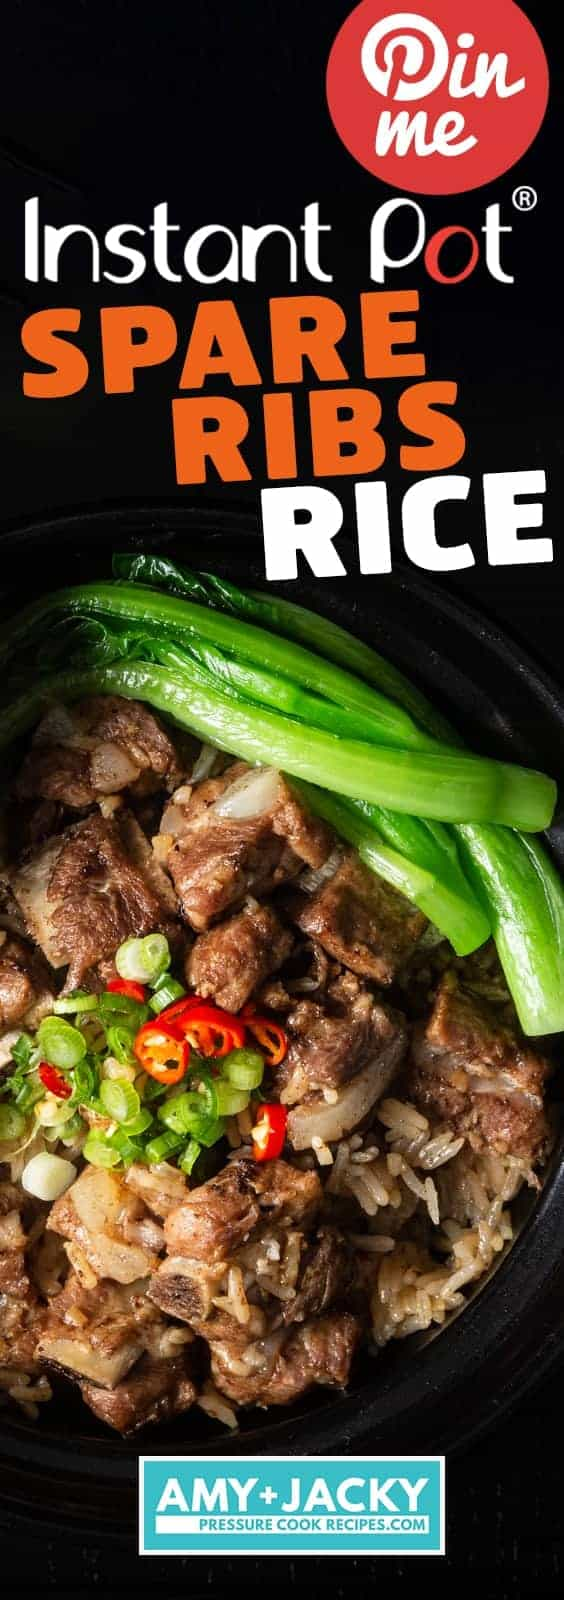 Instant Pot Spare Ribs and Rice (Pressure Cooker) 豉汁排骨飯. Super Easy and Quick One Pot Meal. Deliciously tender black bean sauce spare ribs with flavorful comforting rice. #instantpot #pressurecooker #ribs #chinese #recipes #onepotmeal